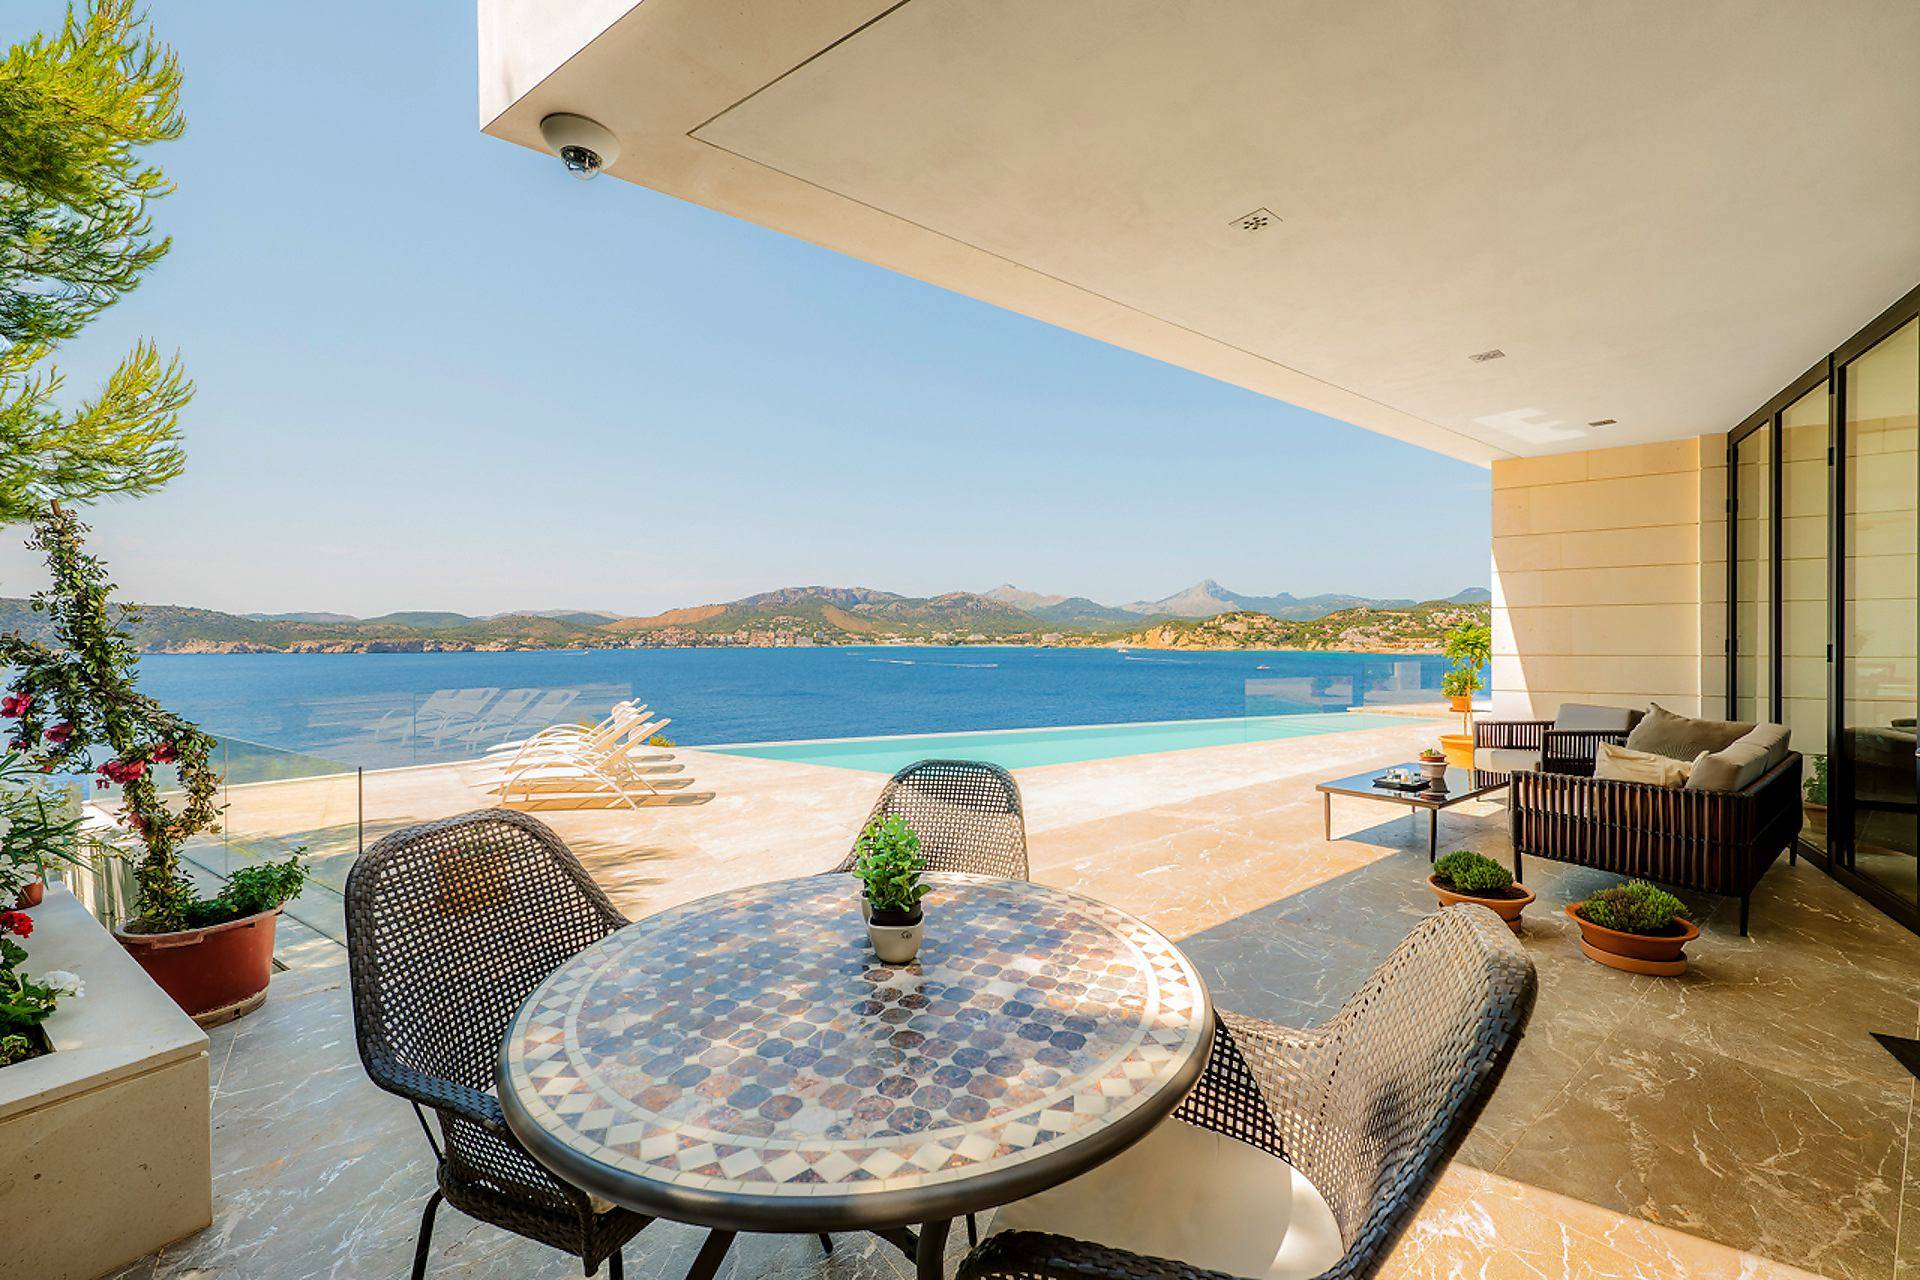 01-269 exclusive Luxury Villa Mallorca Southwest Bild 14